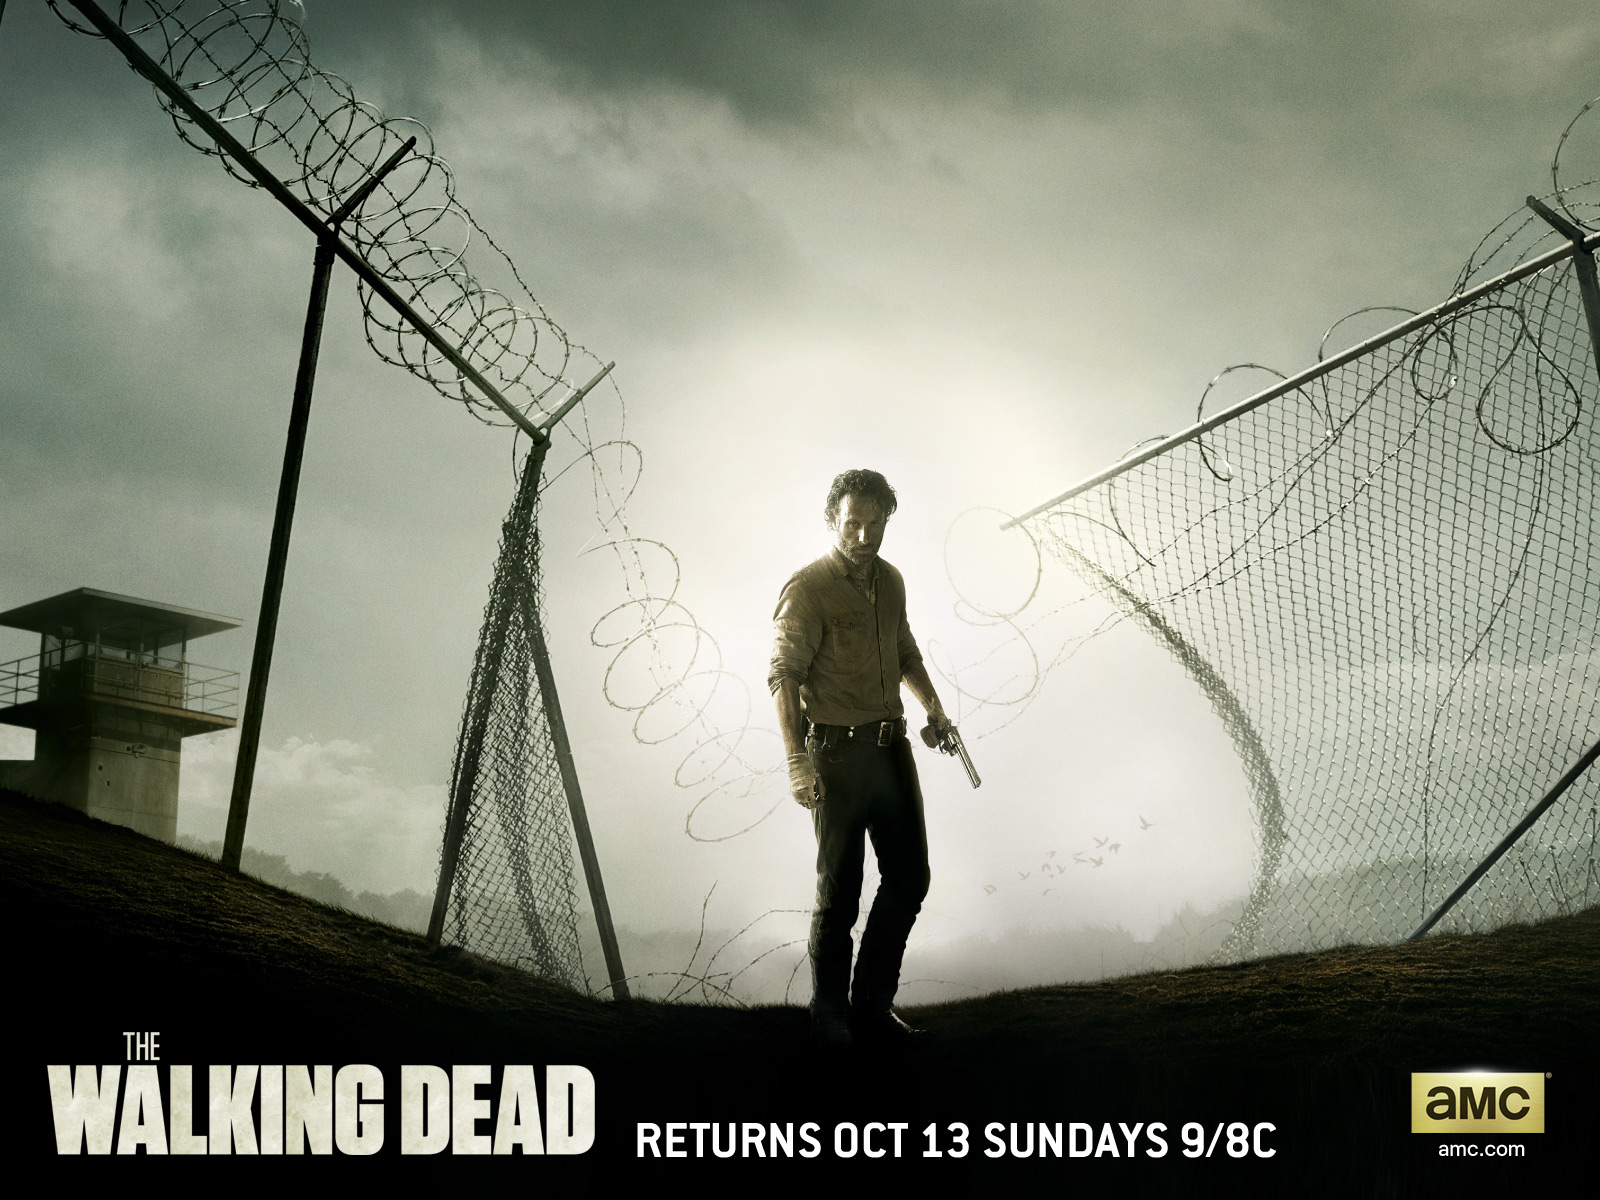 The walking dead season 4 wallpapers the walking dead season 4 image the walking dead season 4 wallpapers and stock photos voltagebd Choice Image